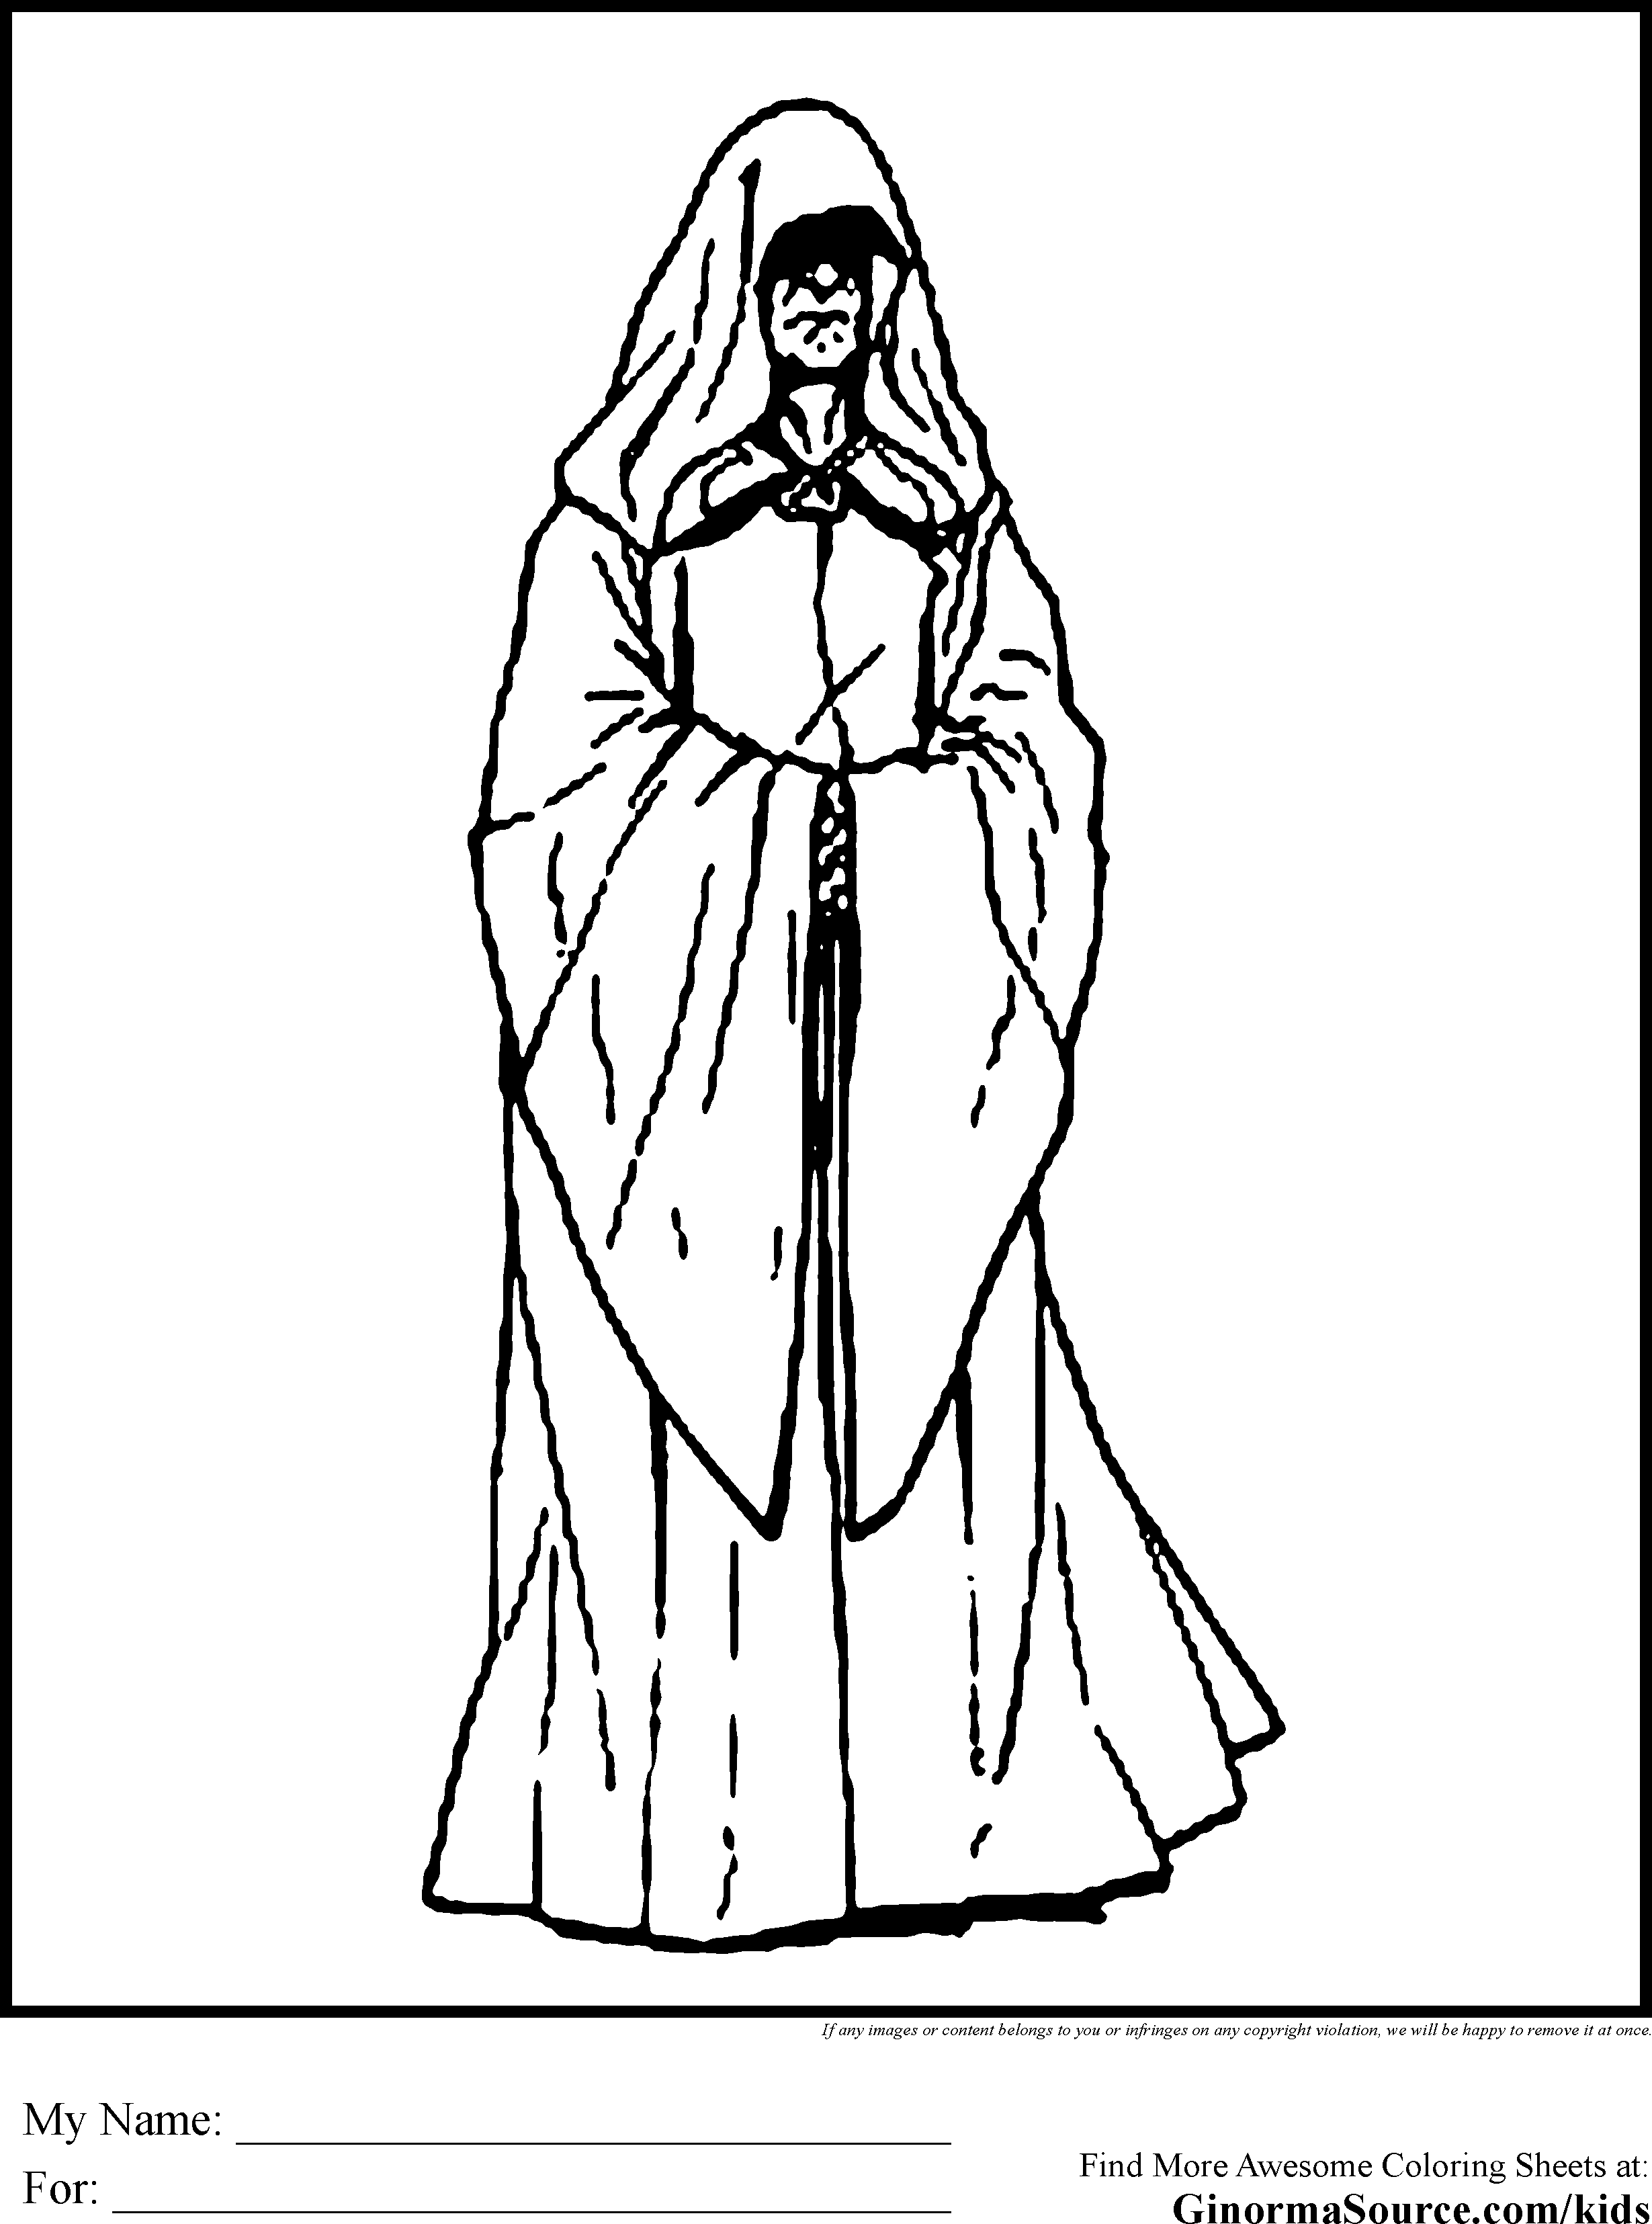 Darth Sidious coloring pages Google Search